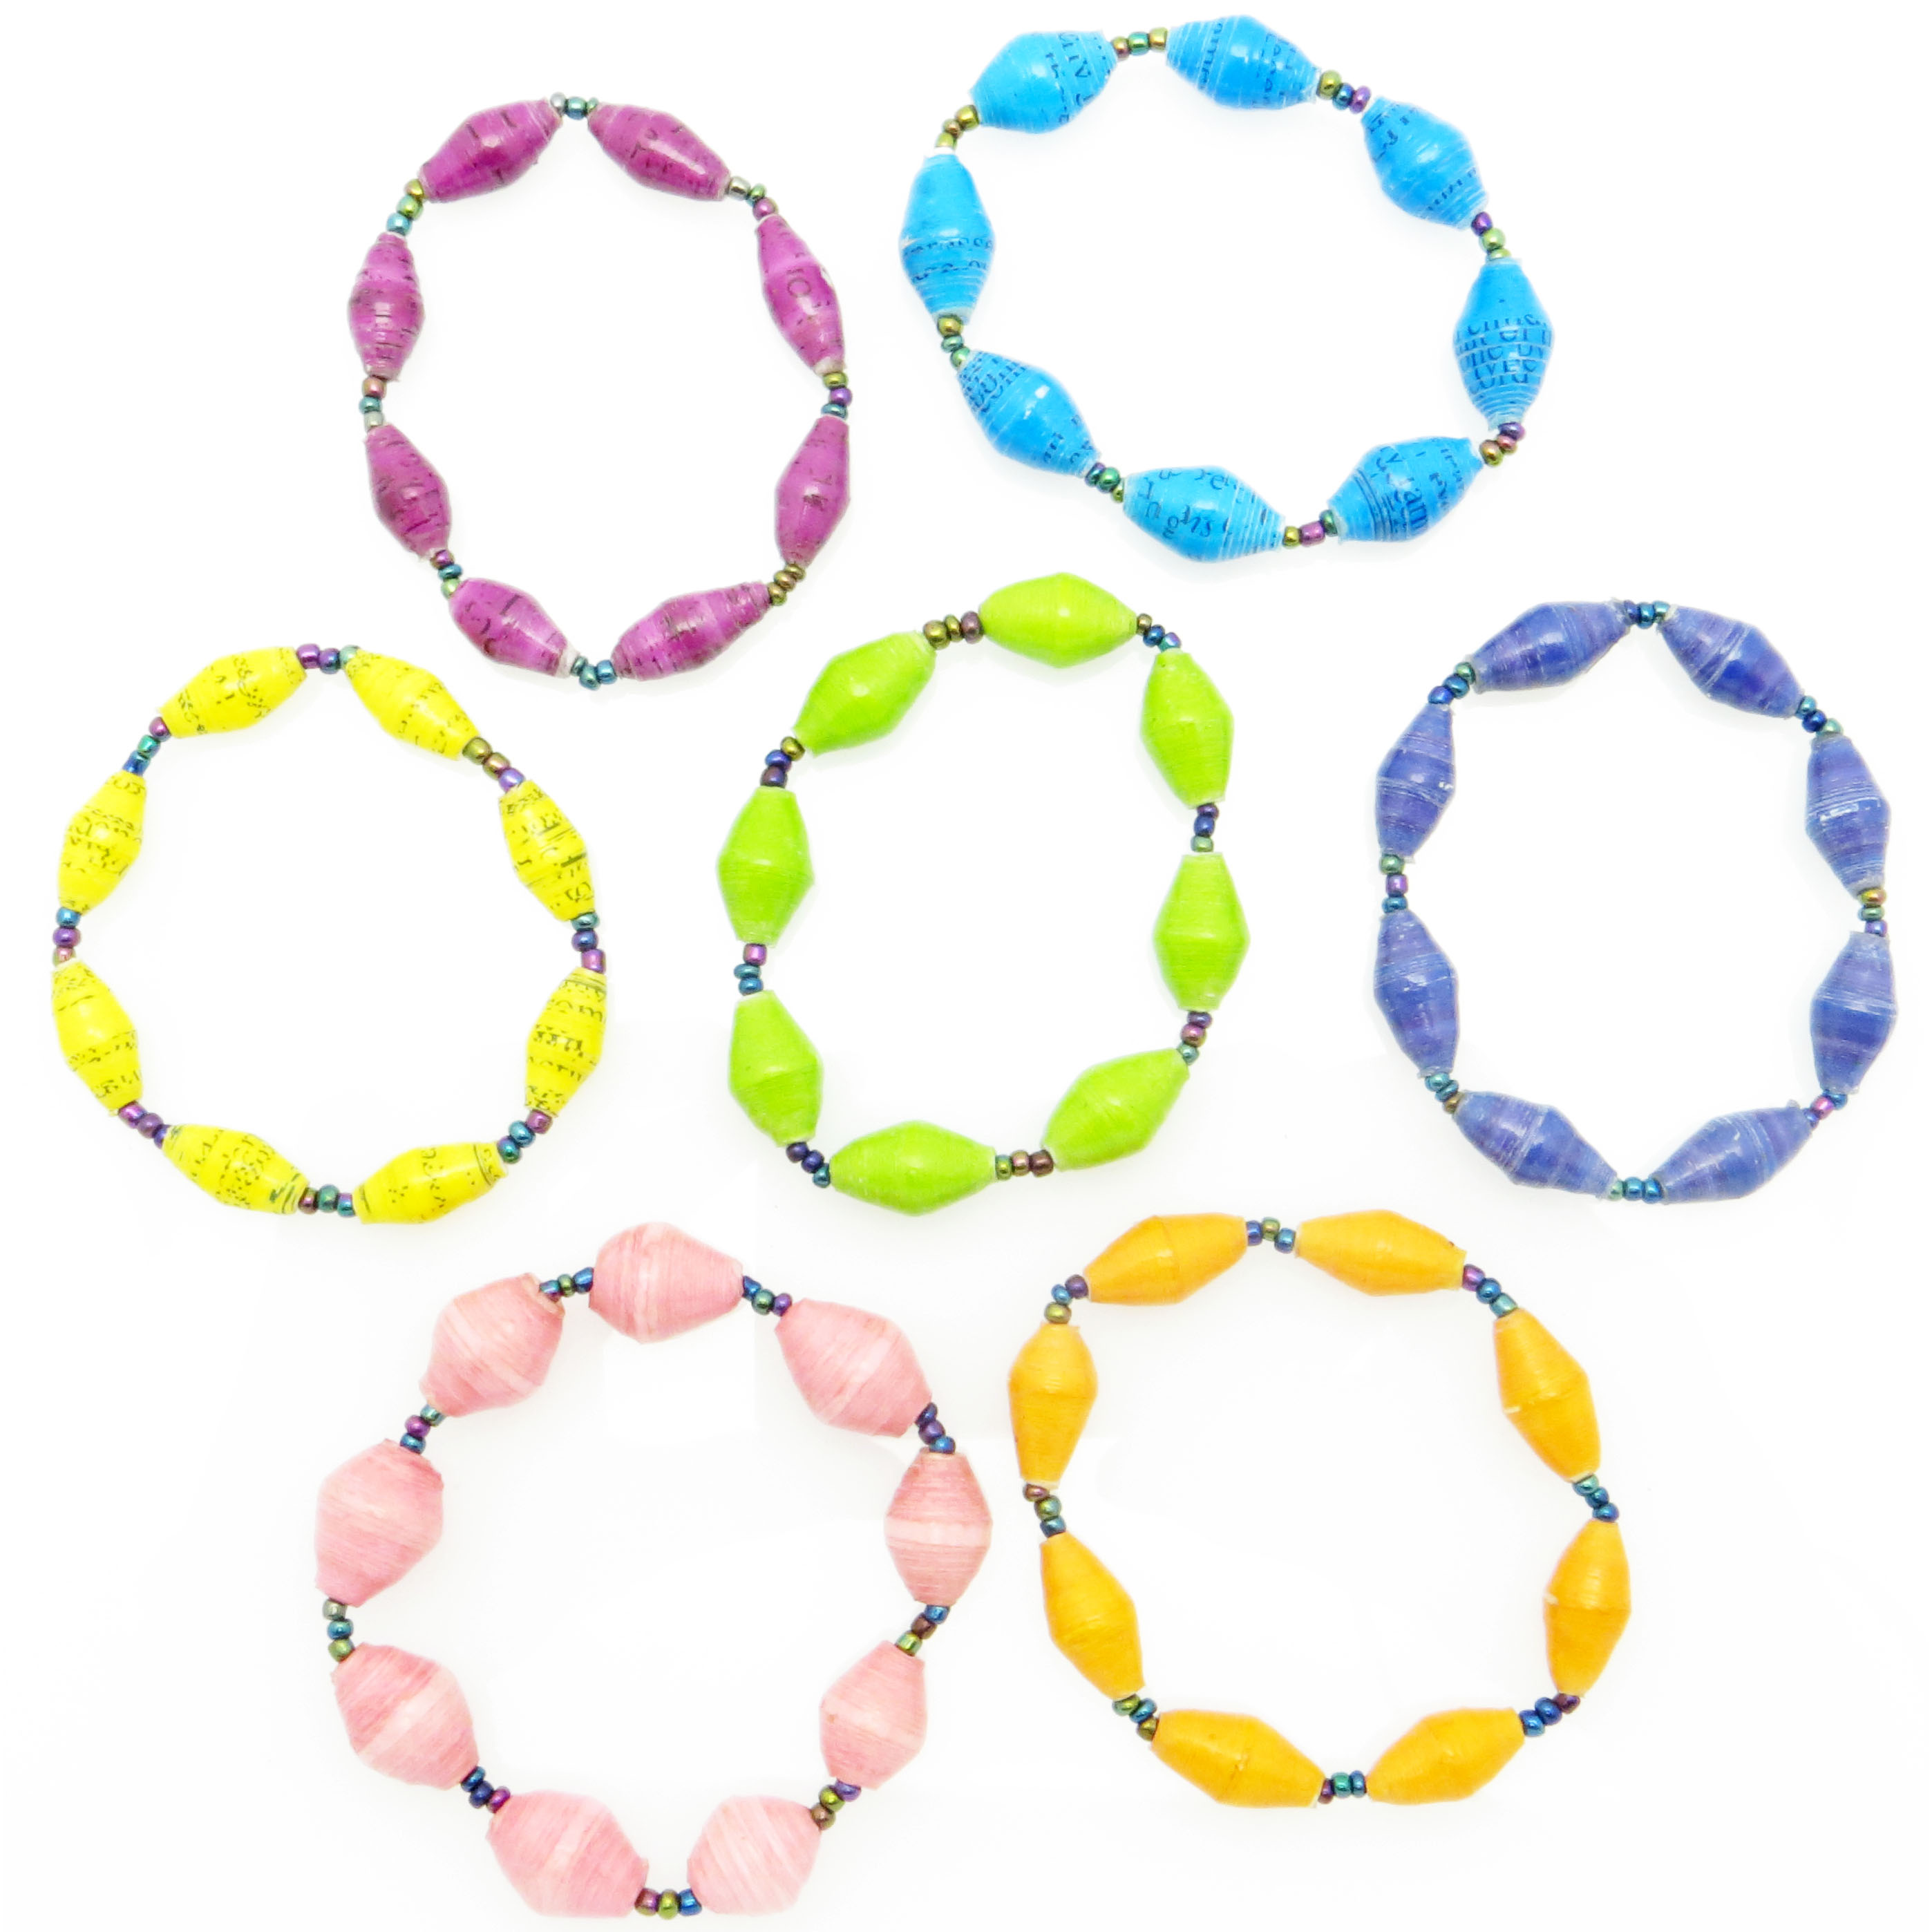 Child's bracelet - bright solid colors